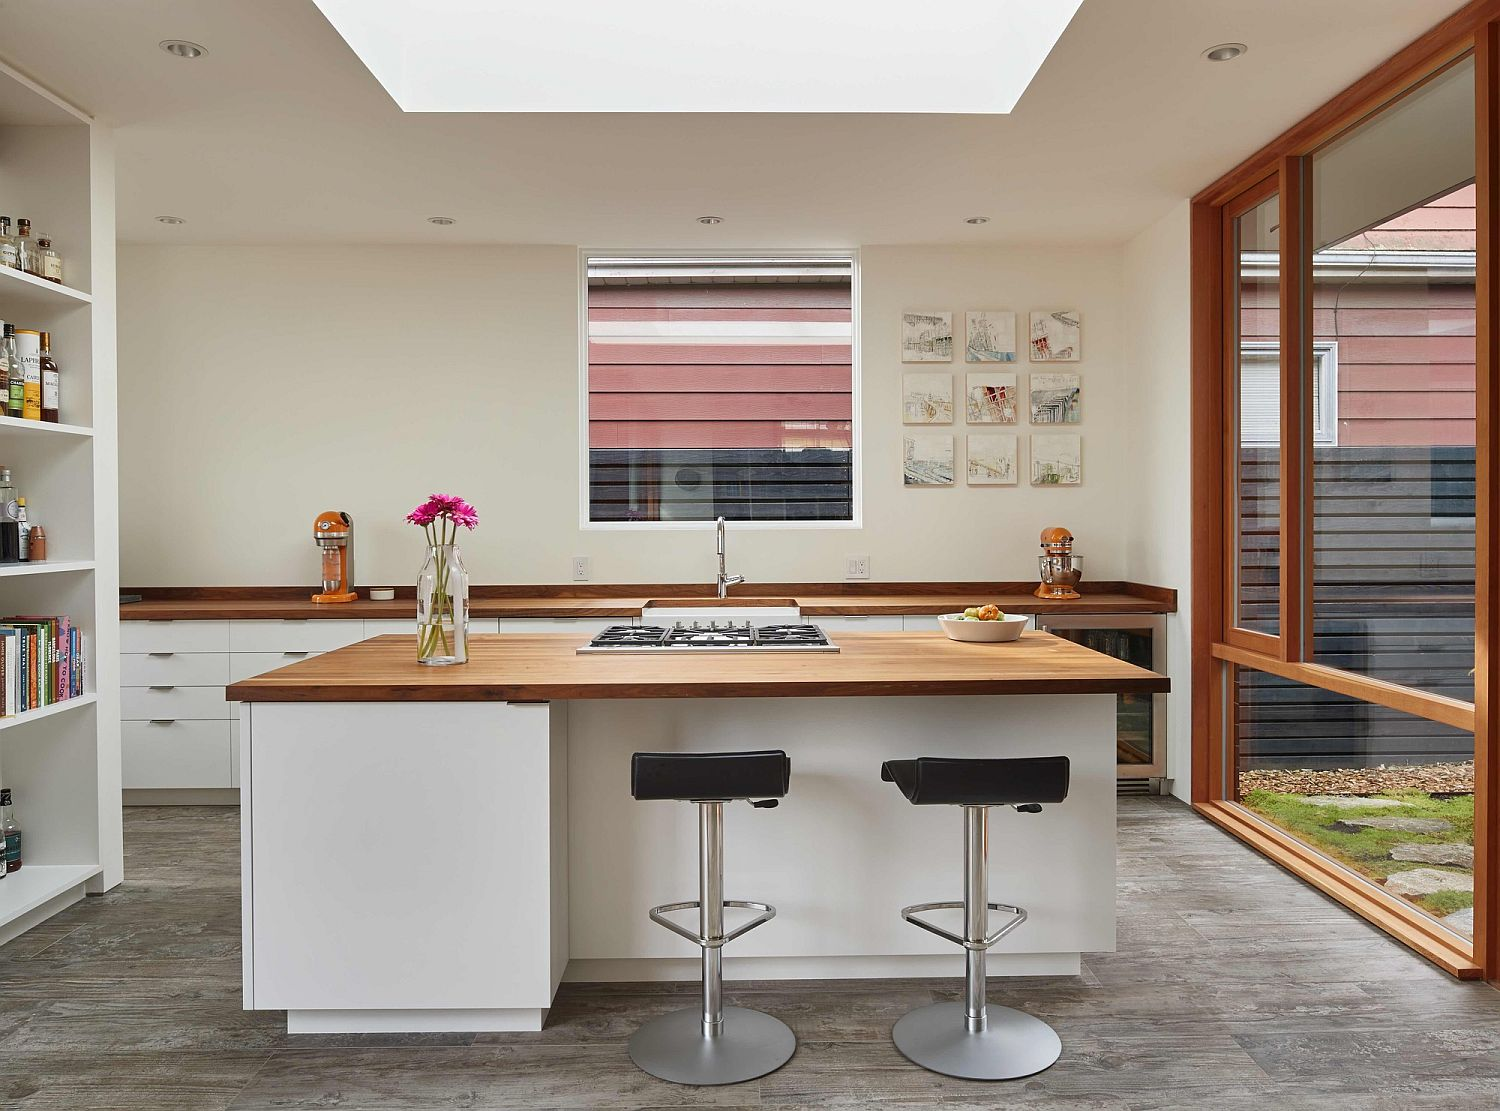 Modern kitchen in white with wooden countertops and ample natural lighting